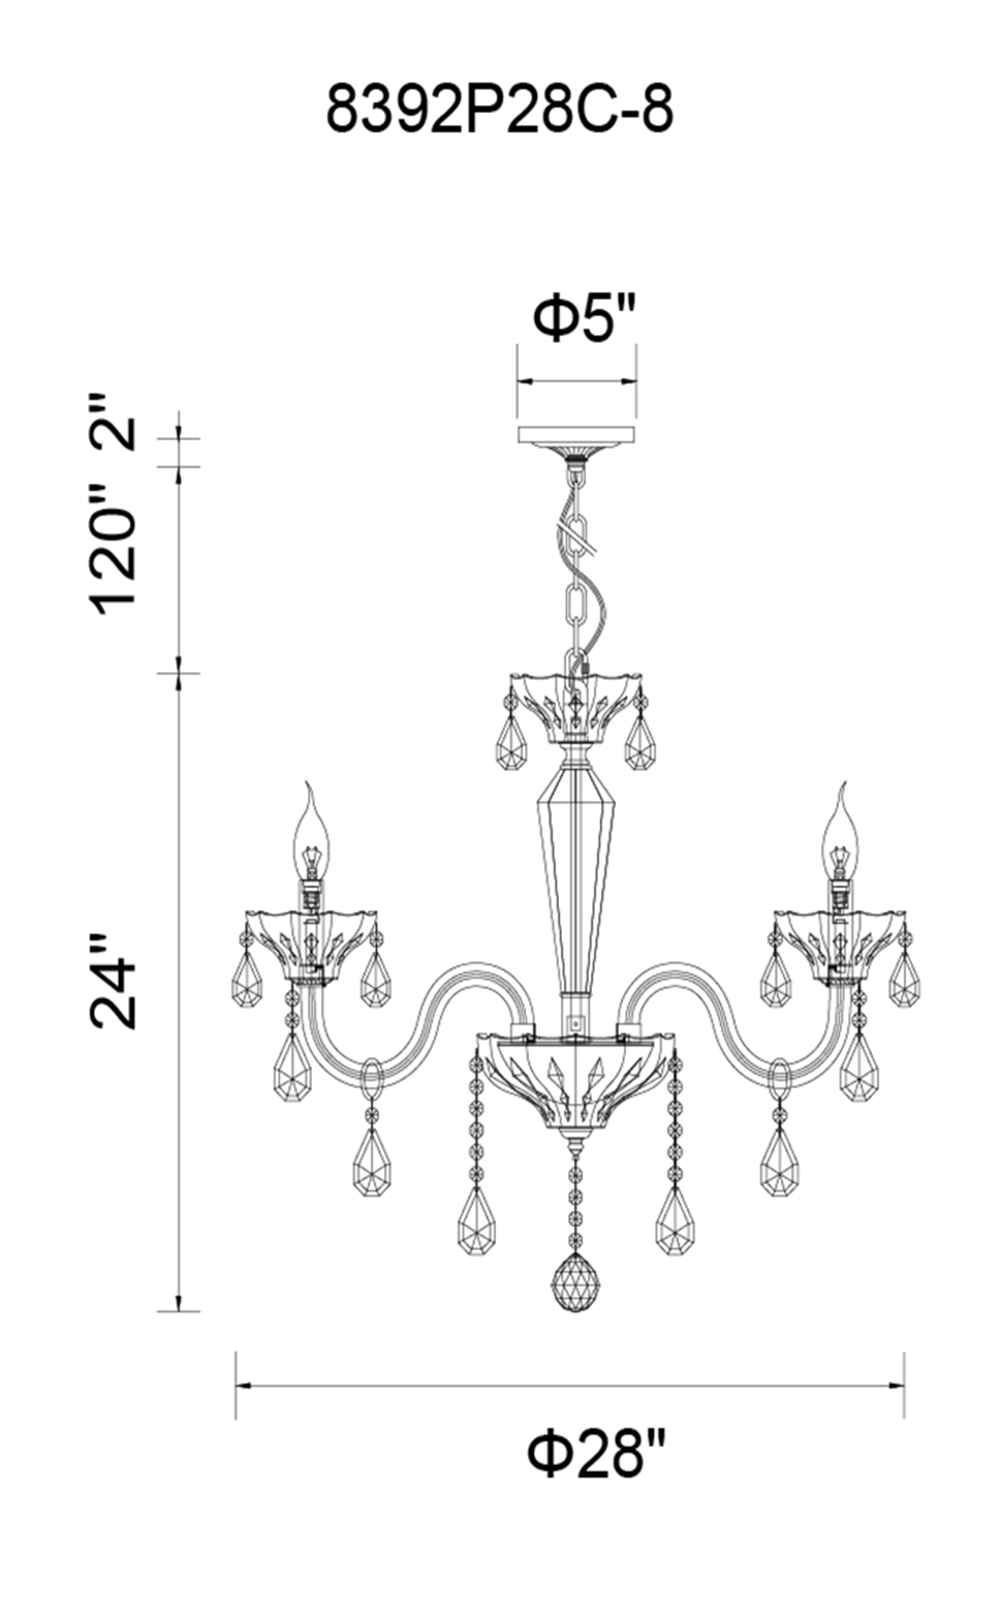 CWI Lighting Harvard 8 Light Up Chandelier With Chrome Finish Model: 8392P28C-8 Line Drawing